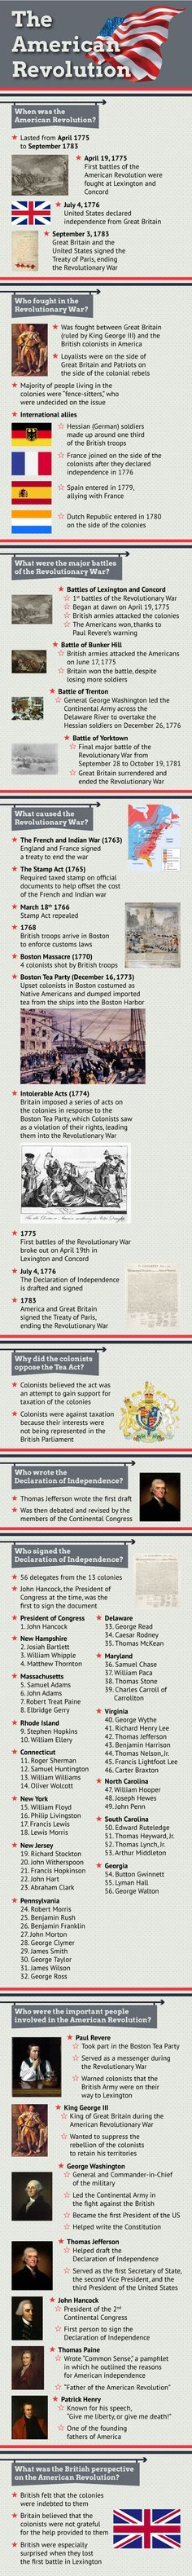 Nice blogpost about Infographic of The American Revolution by mowpages